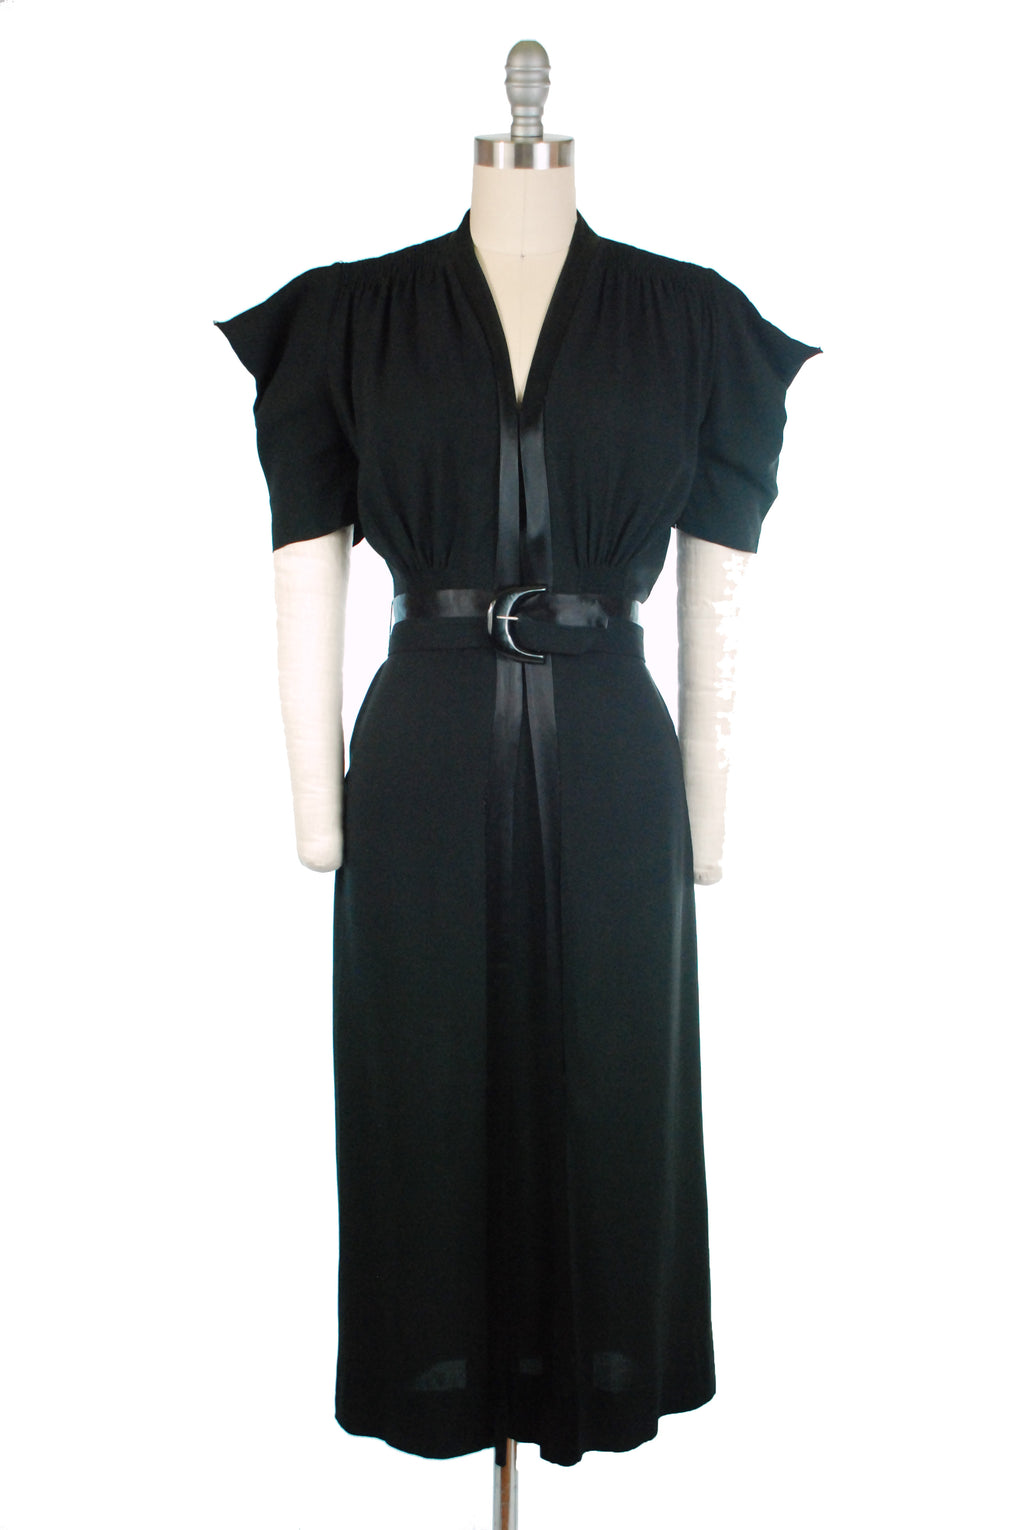 Wicked Late 1930s Gothy Black Day Dress with Pointed Sleeves and Satin Trim